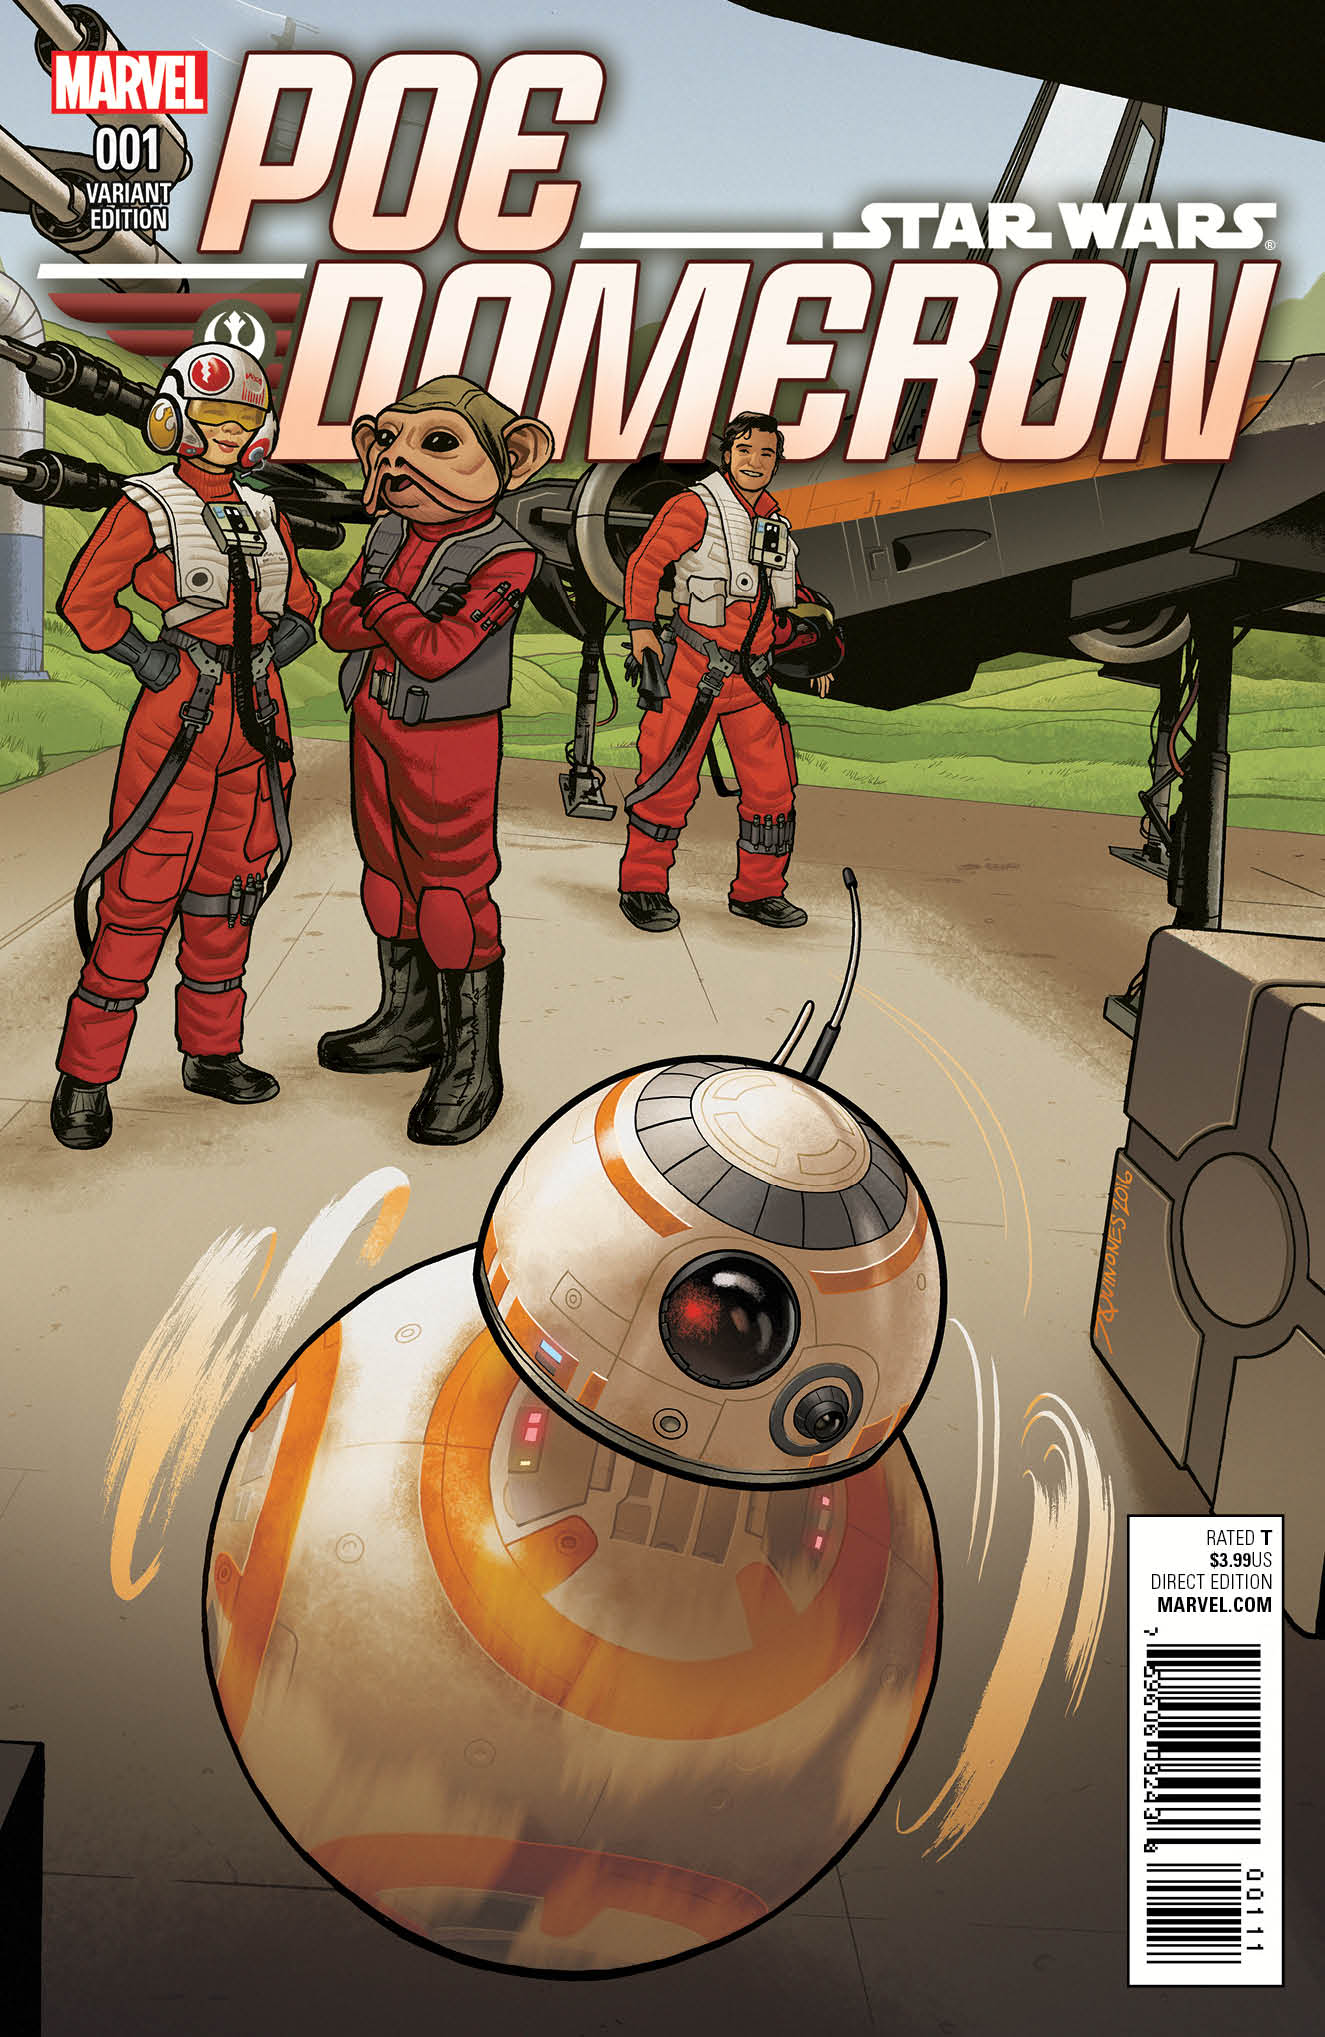 Poe Dameron #1 (Joe Quinones BB-8 Variant Cover) (06.04.2016)